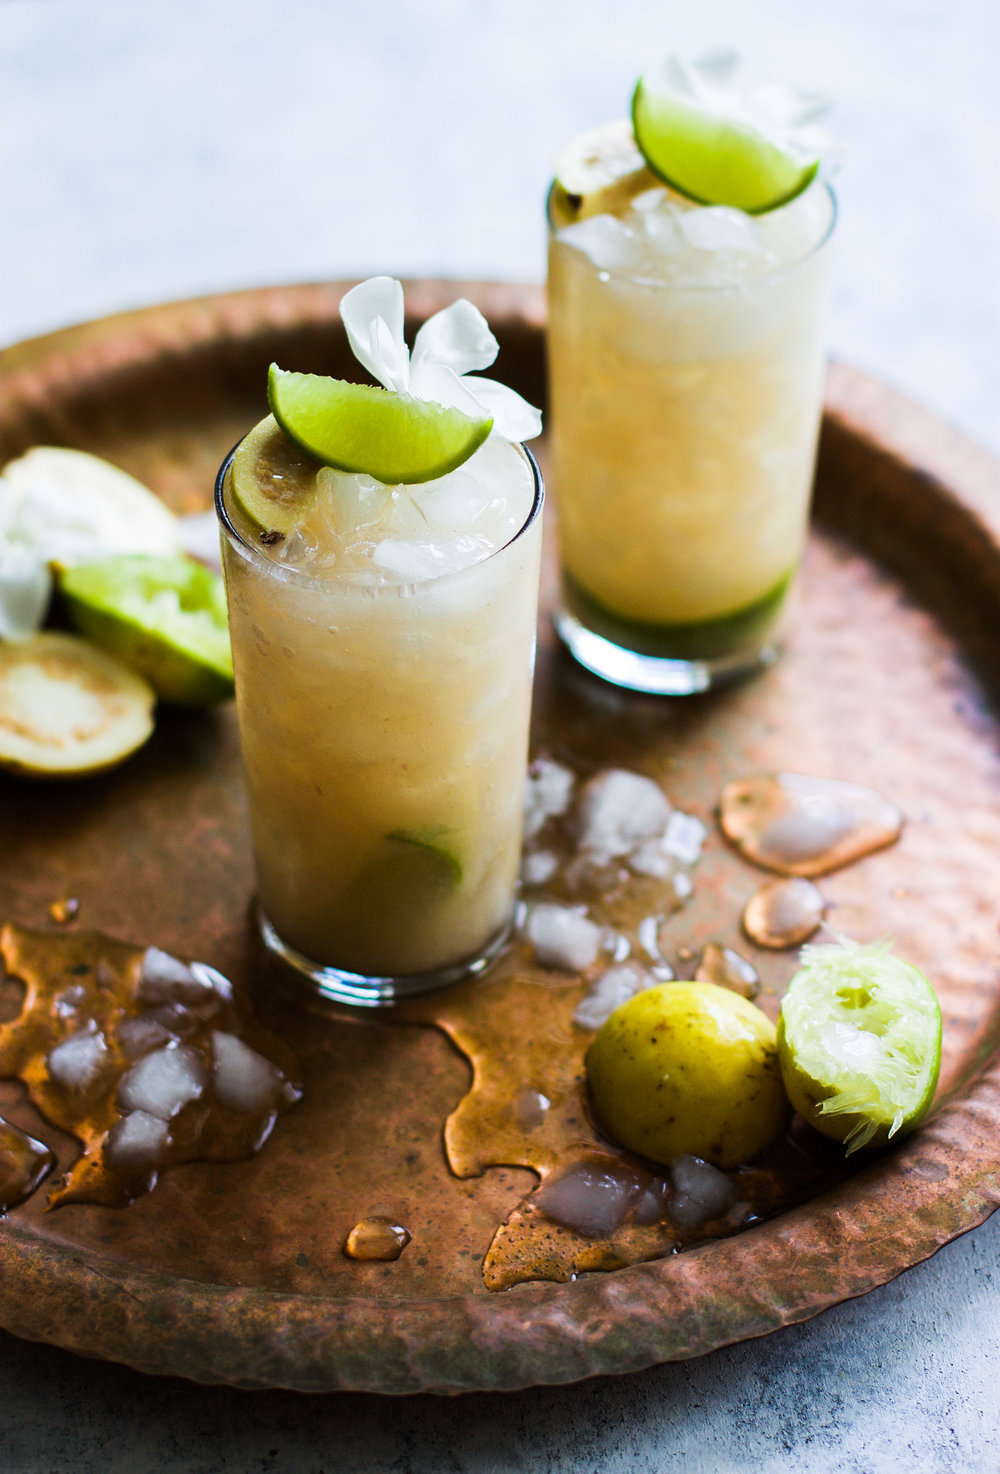 Guava Caipirinhas: My Diary of Us